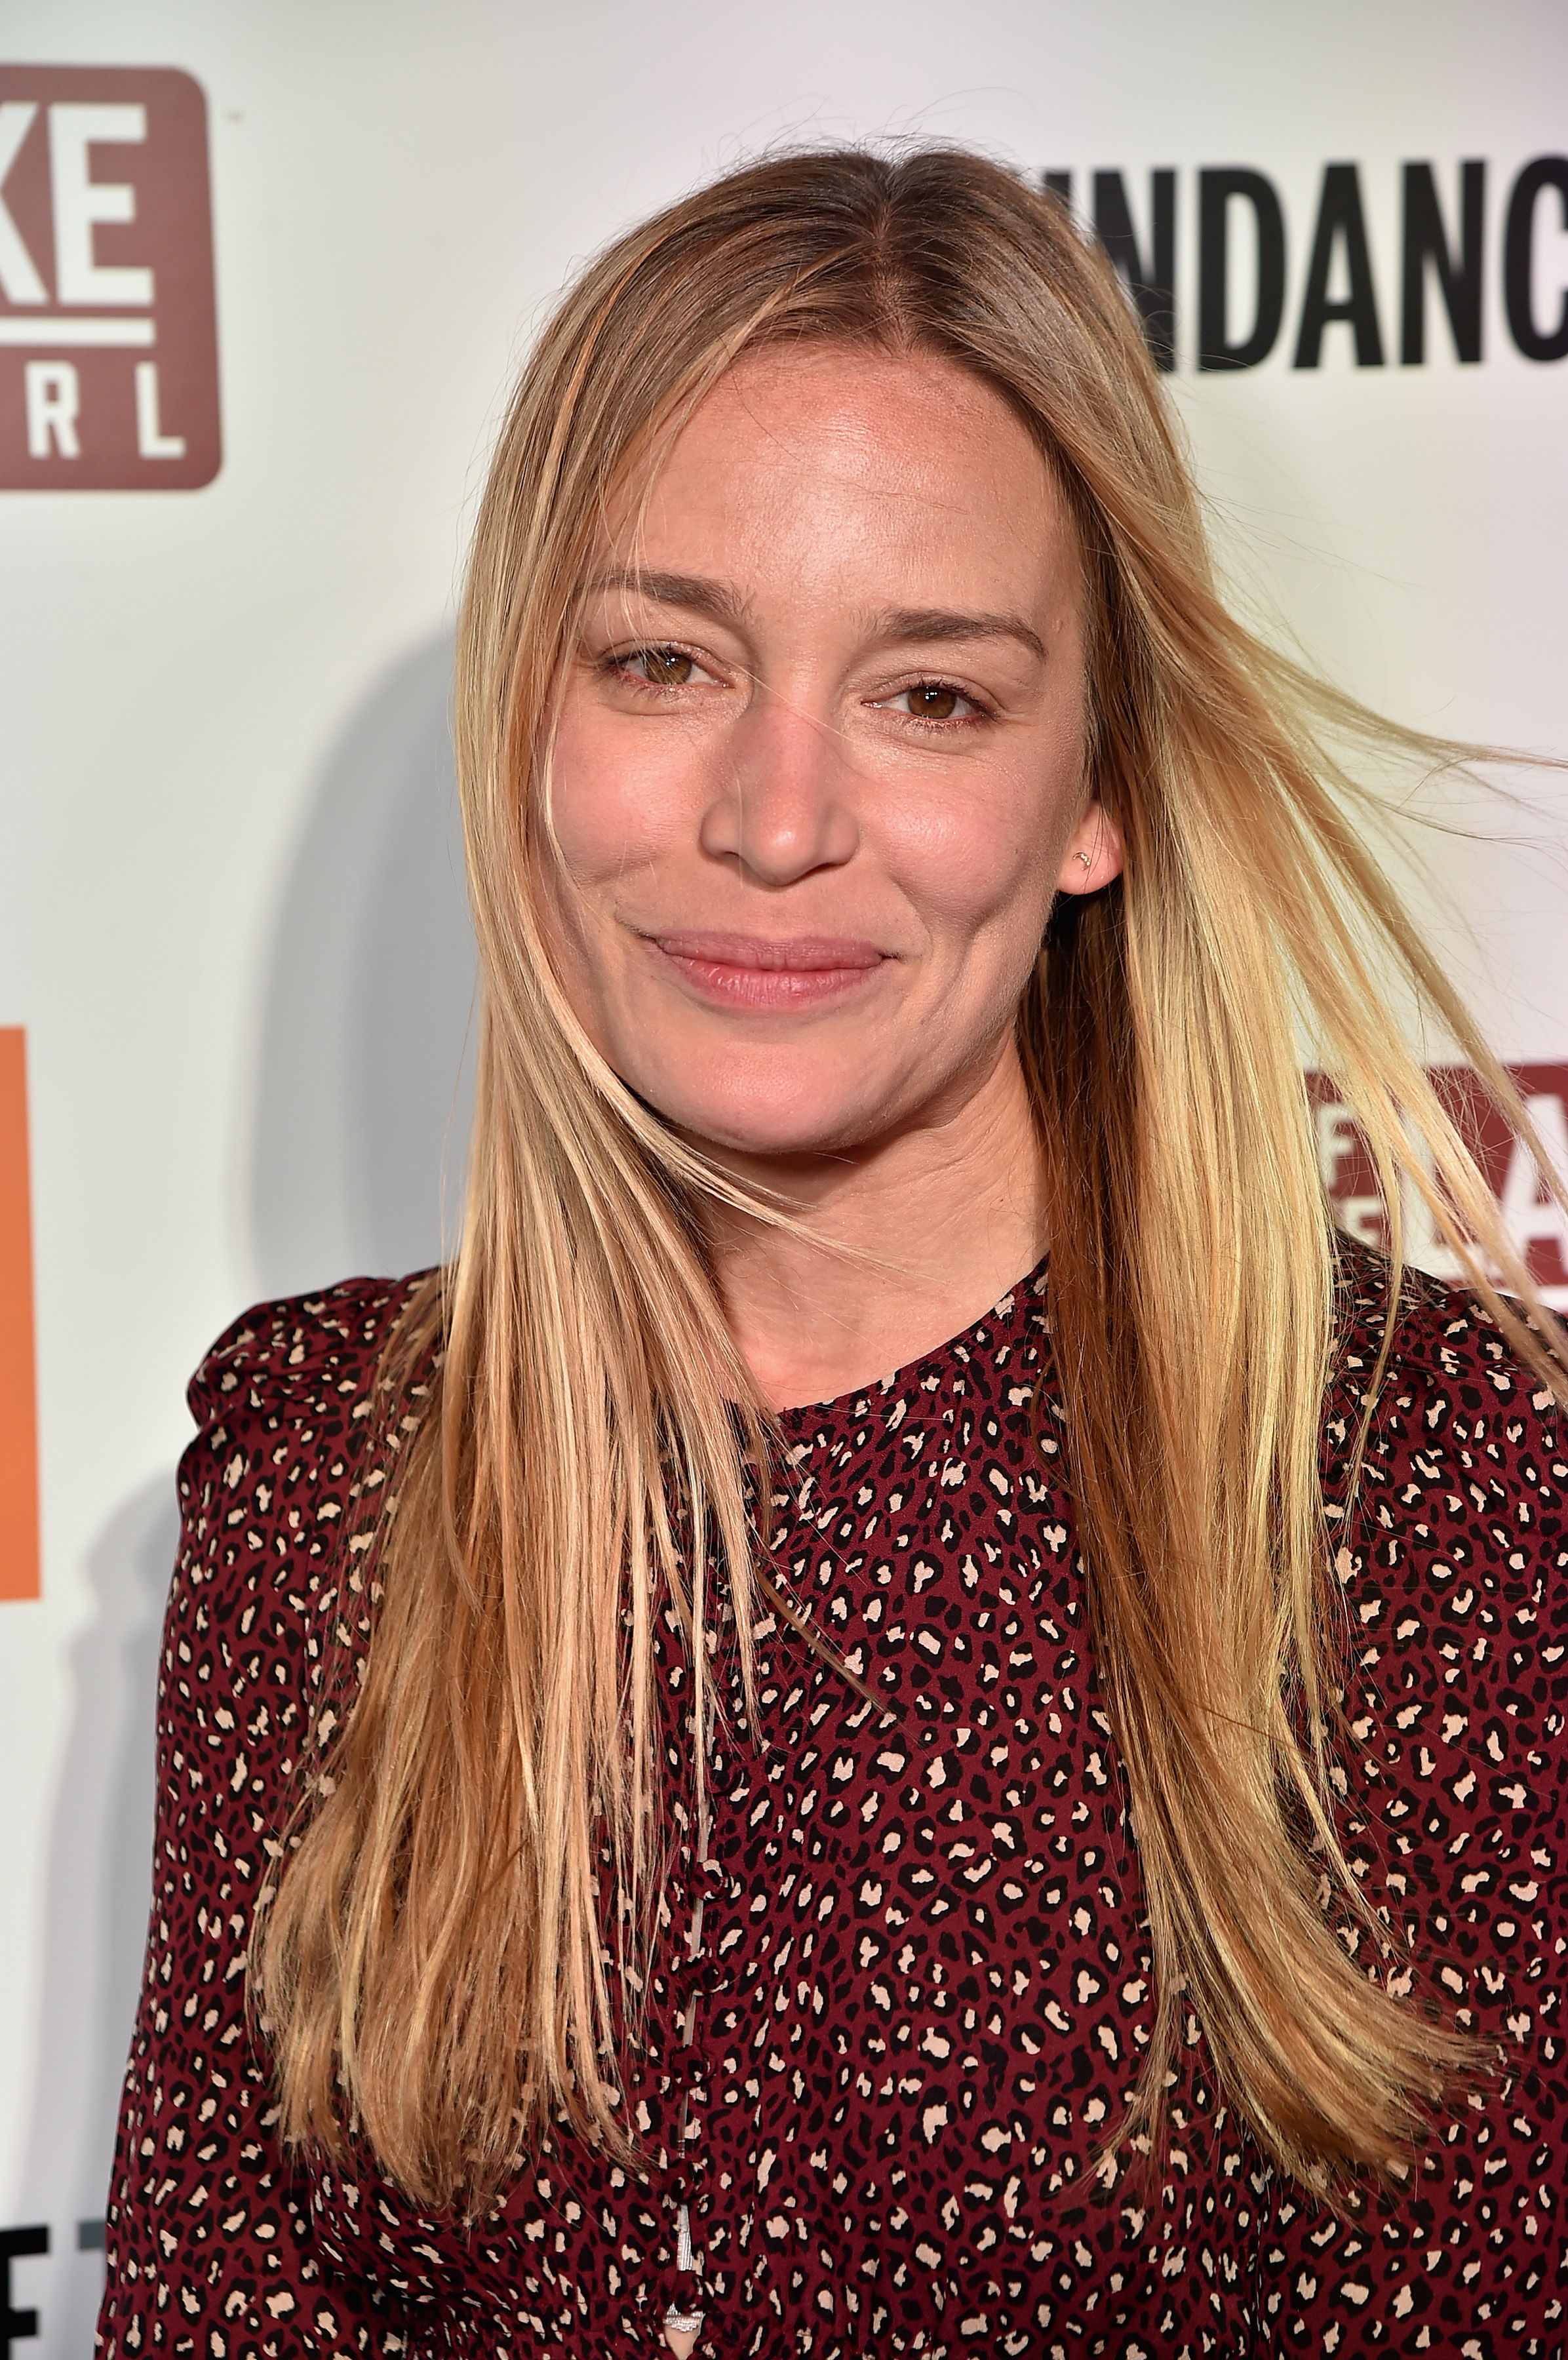 Piper Perabo attends 'Top Of The Lake China Girl' Premiere at Walter Reade Theater on September 7, 2017 in New York City.